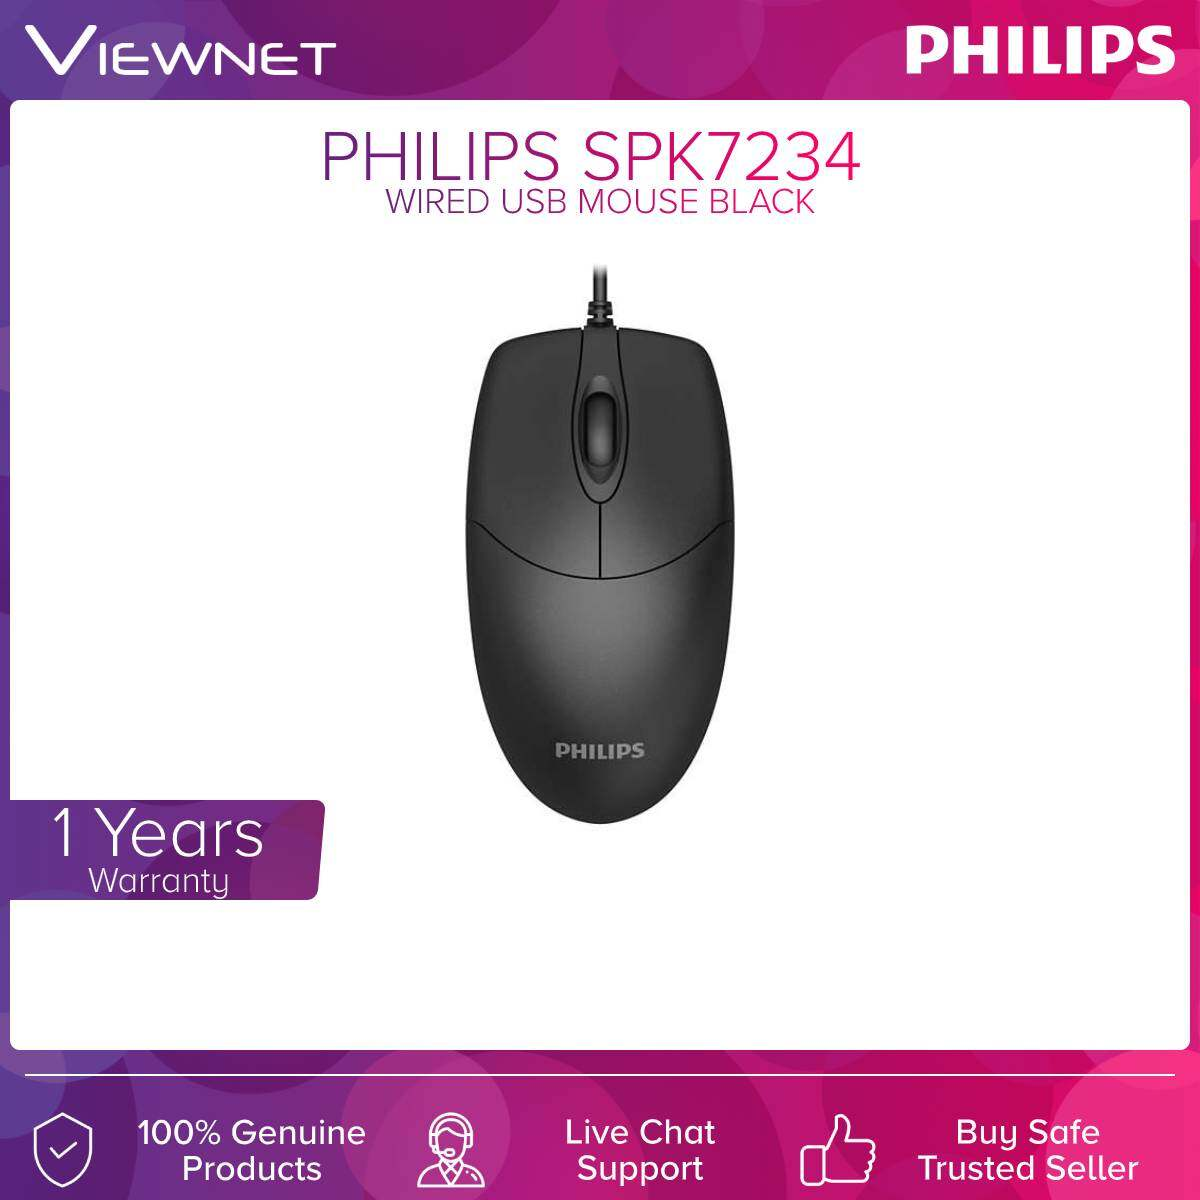 Philips (SPK7234) Wired Usb Mouse Black